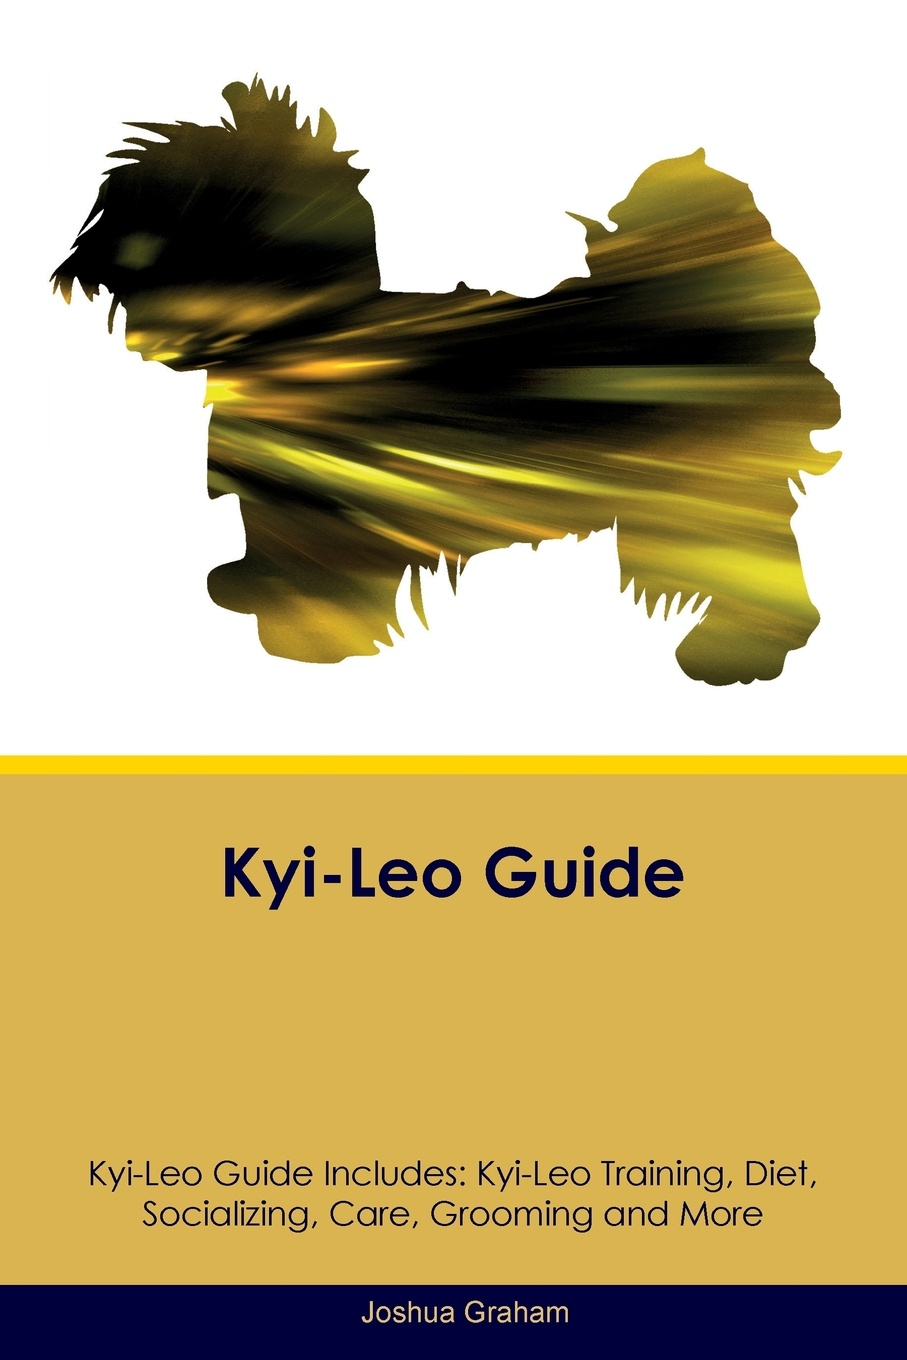 Joshua Graham Kyi-Leo Guide Includes. Training, Diet, Socializing, Care, Grooming, Breeding and More